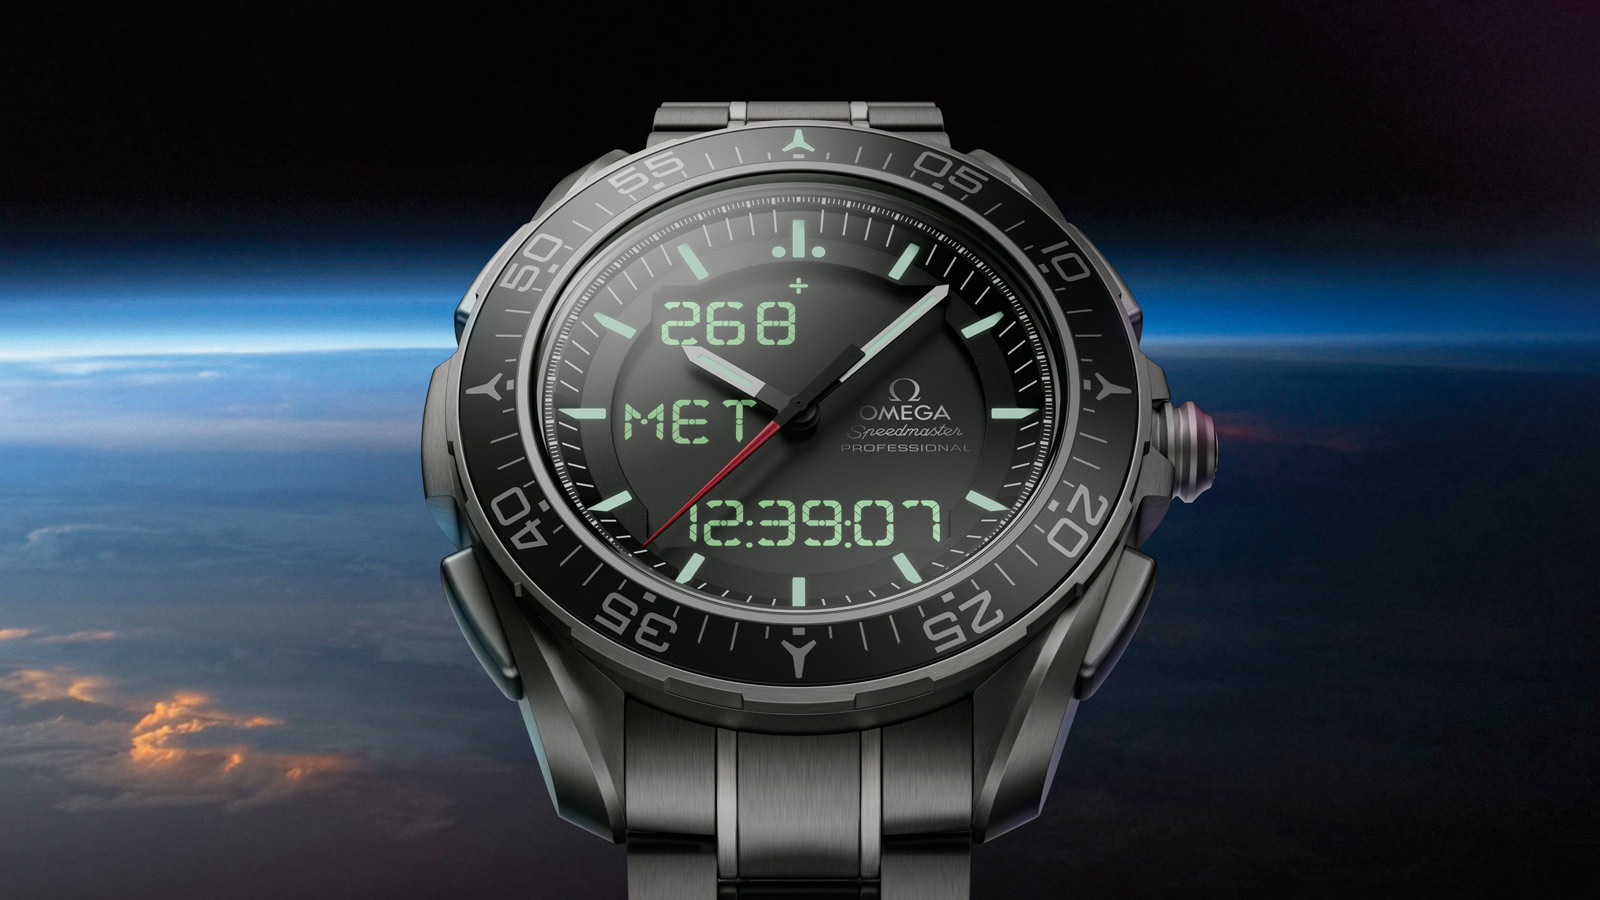 Speedmaster スカイウォーカー X‑33 Skywalker X‑33 Chronograph 45 mm - 318.90.45.79.01.001 - ビュー 4